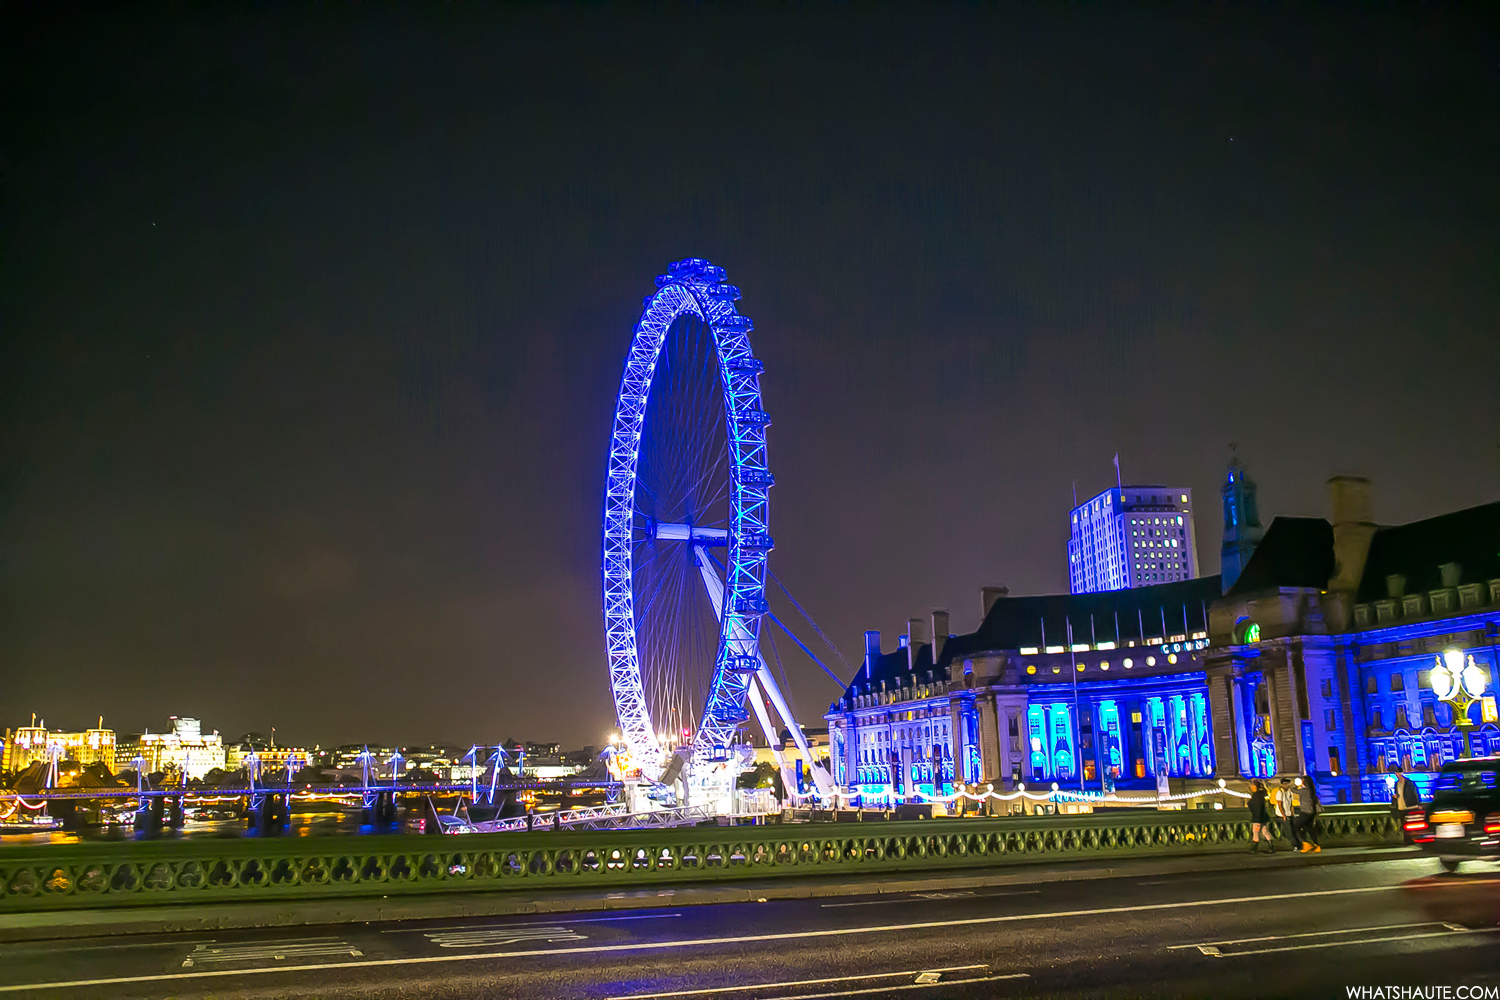 London Eye - London, England, What's Haute in the World